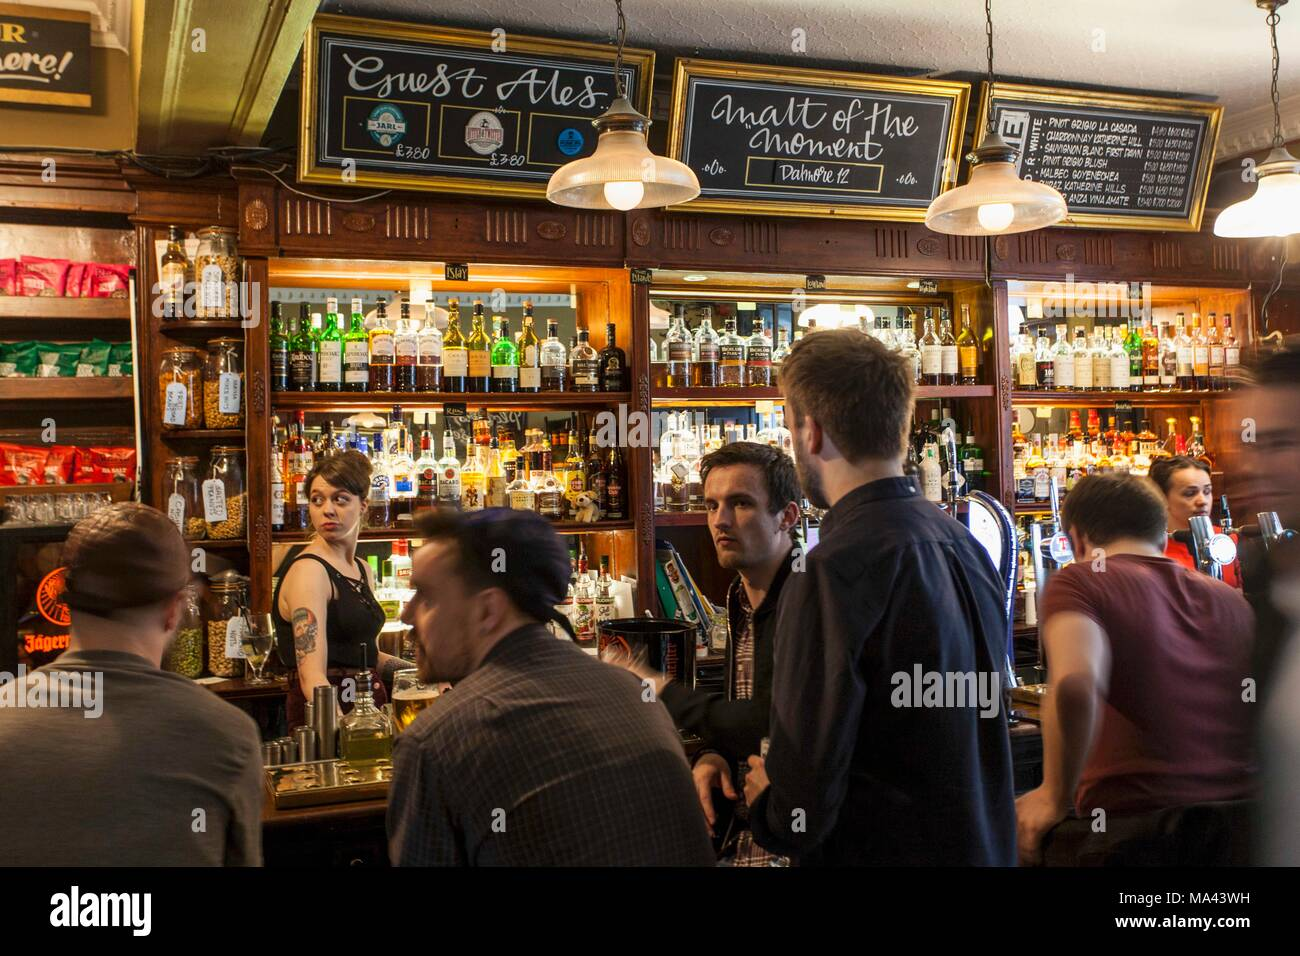 The Thistle Street Bar, Edinburgh, Scotland - Stock Image